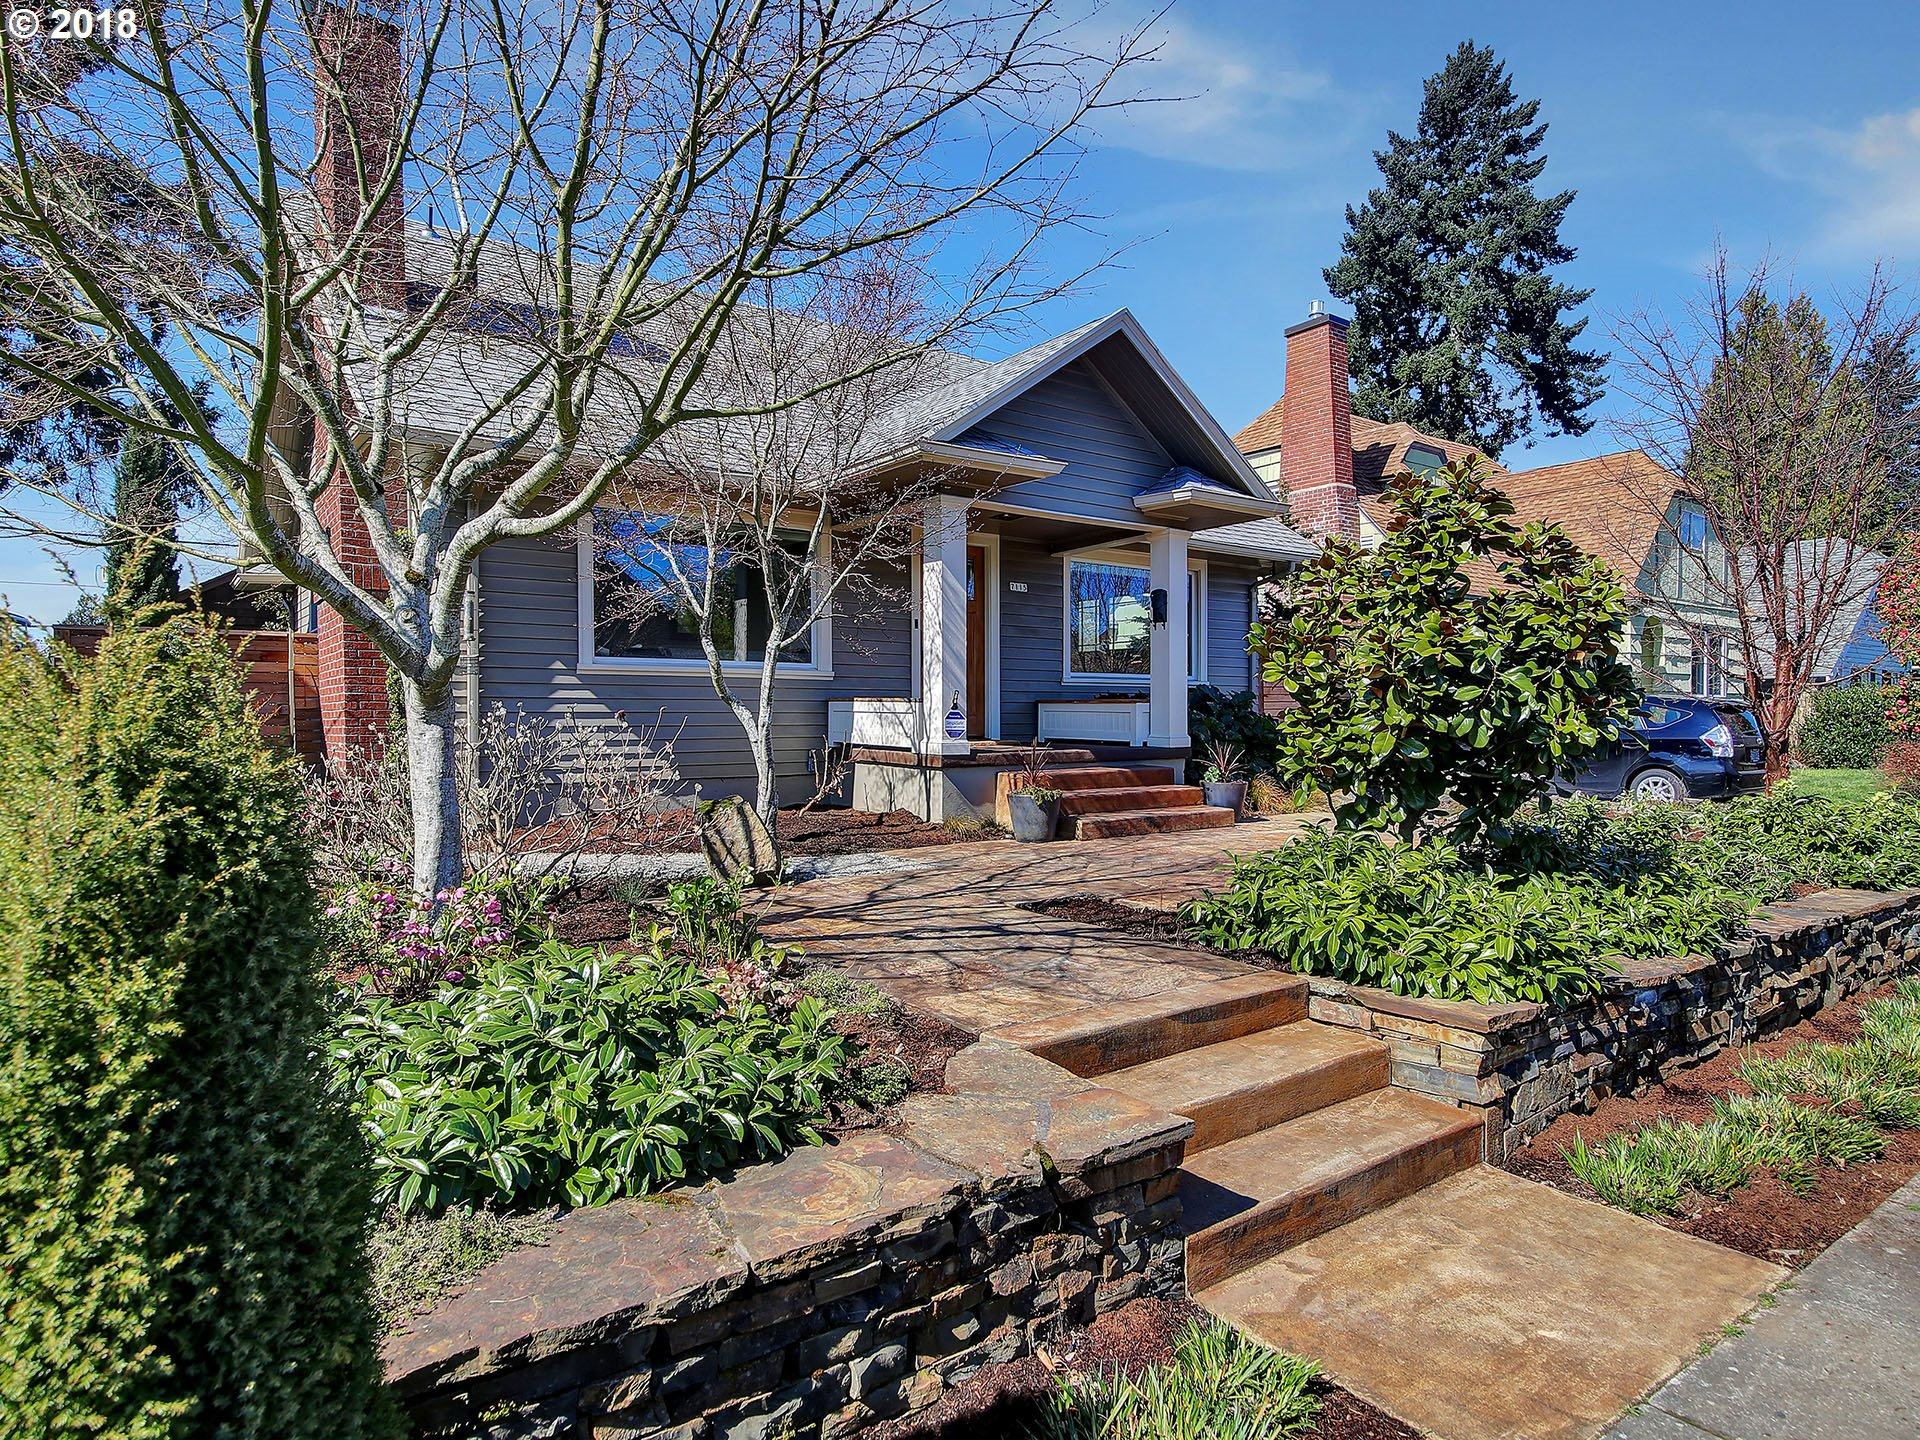 2758 sq. ft 3 bedrooms 2 bathrooms  House For Sale,Portland, OR